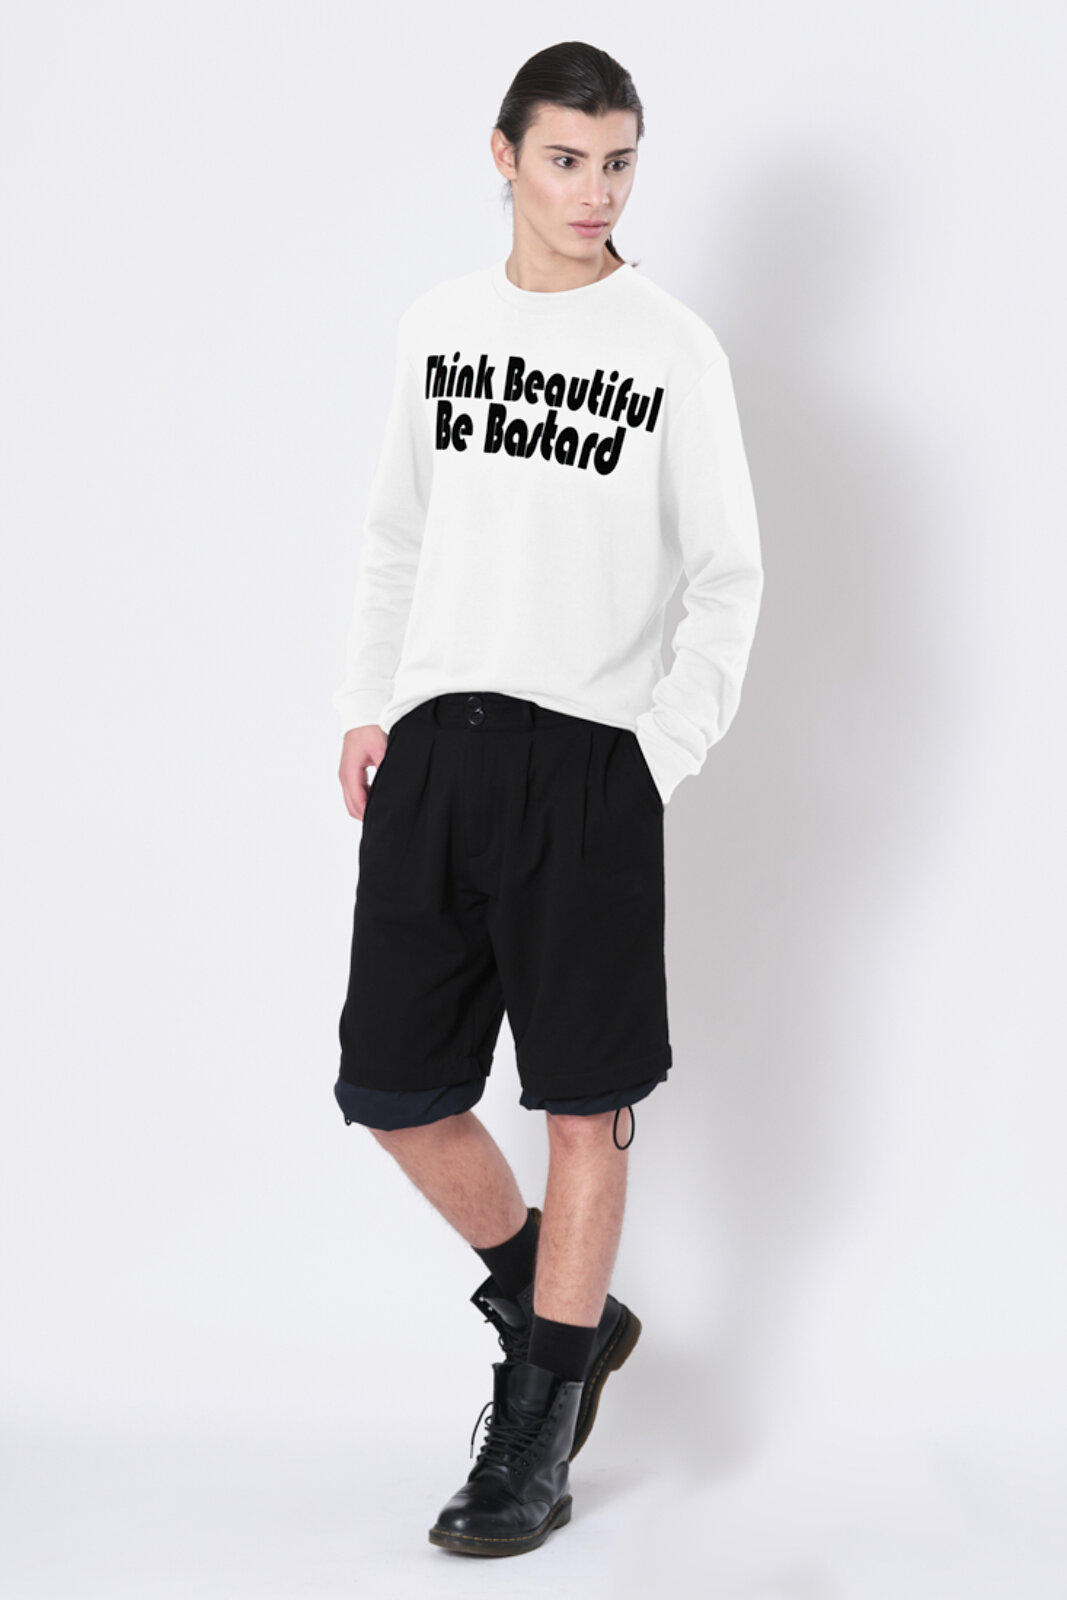 Think Beautiful Sweatshirt - Beautiful Bastard